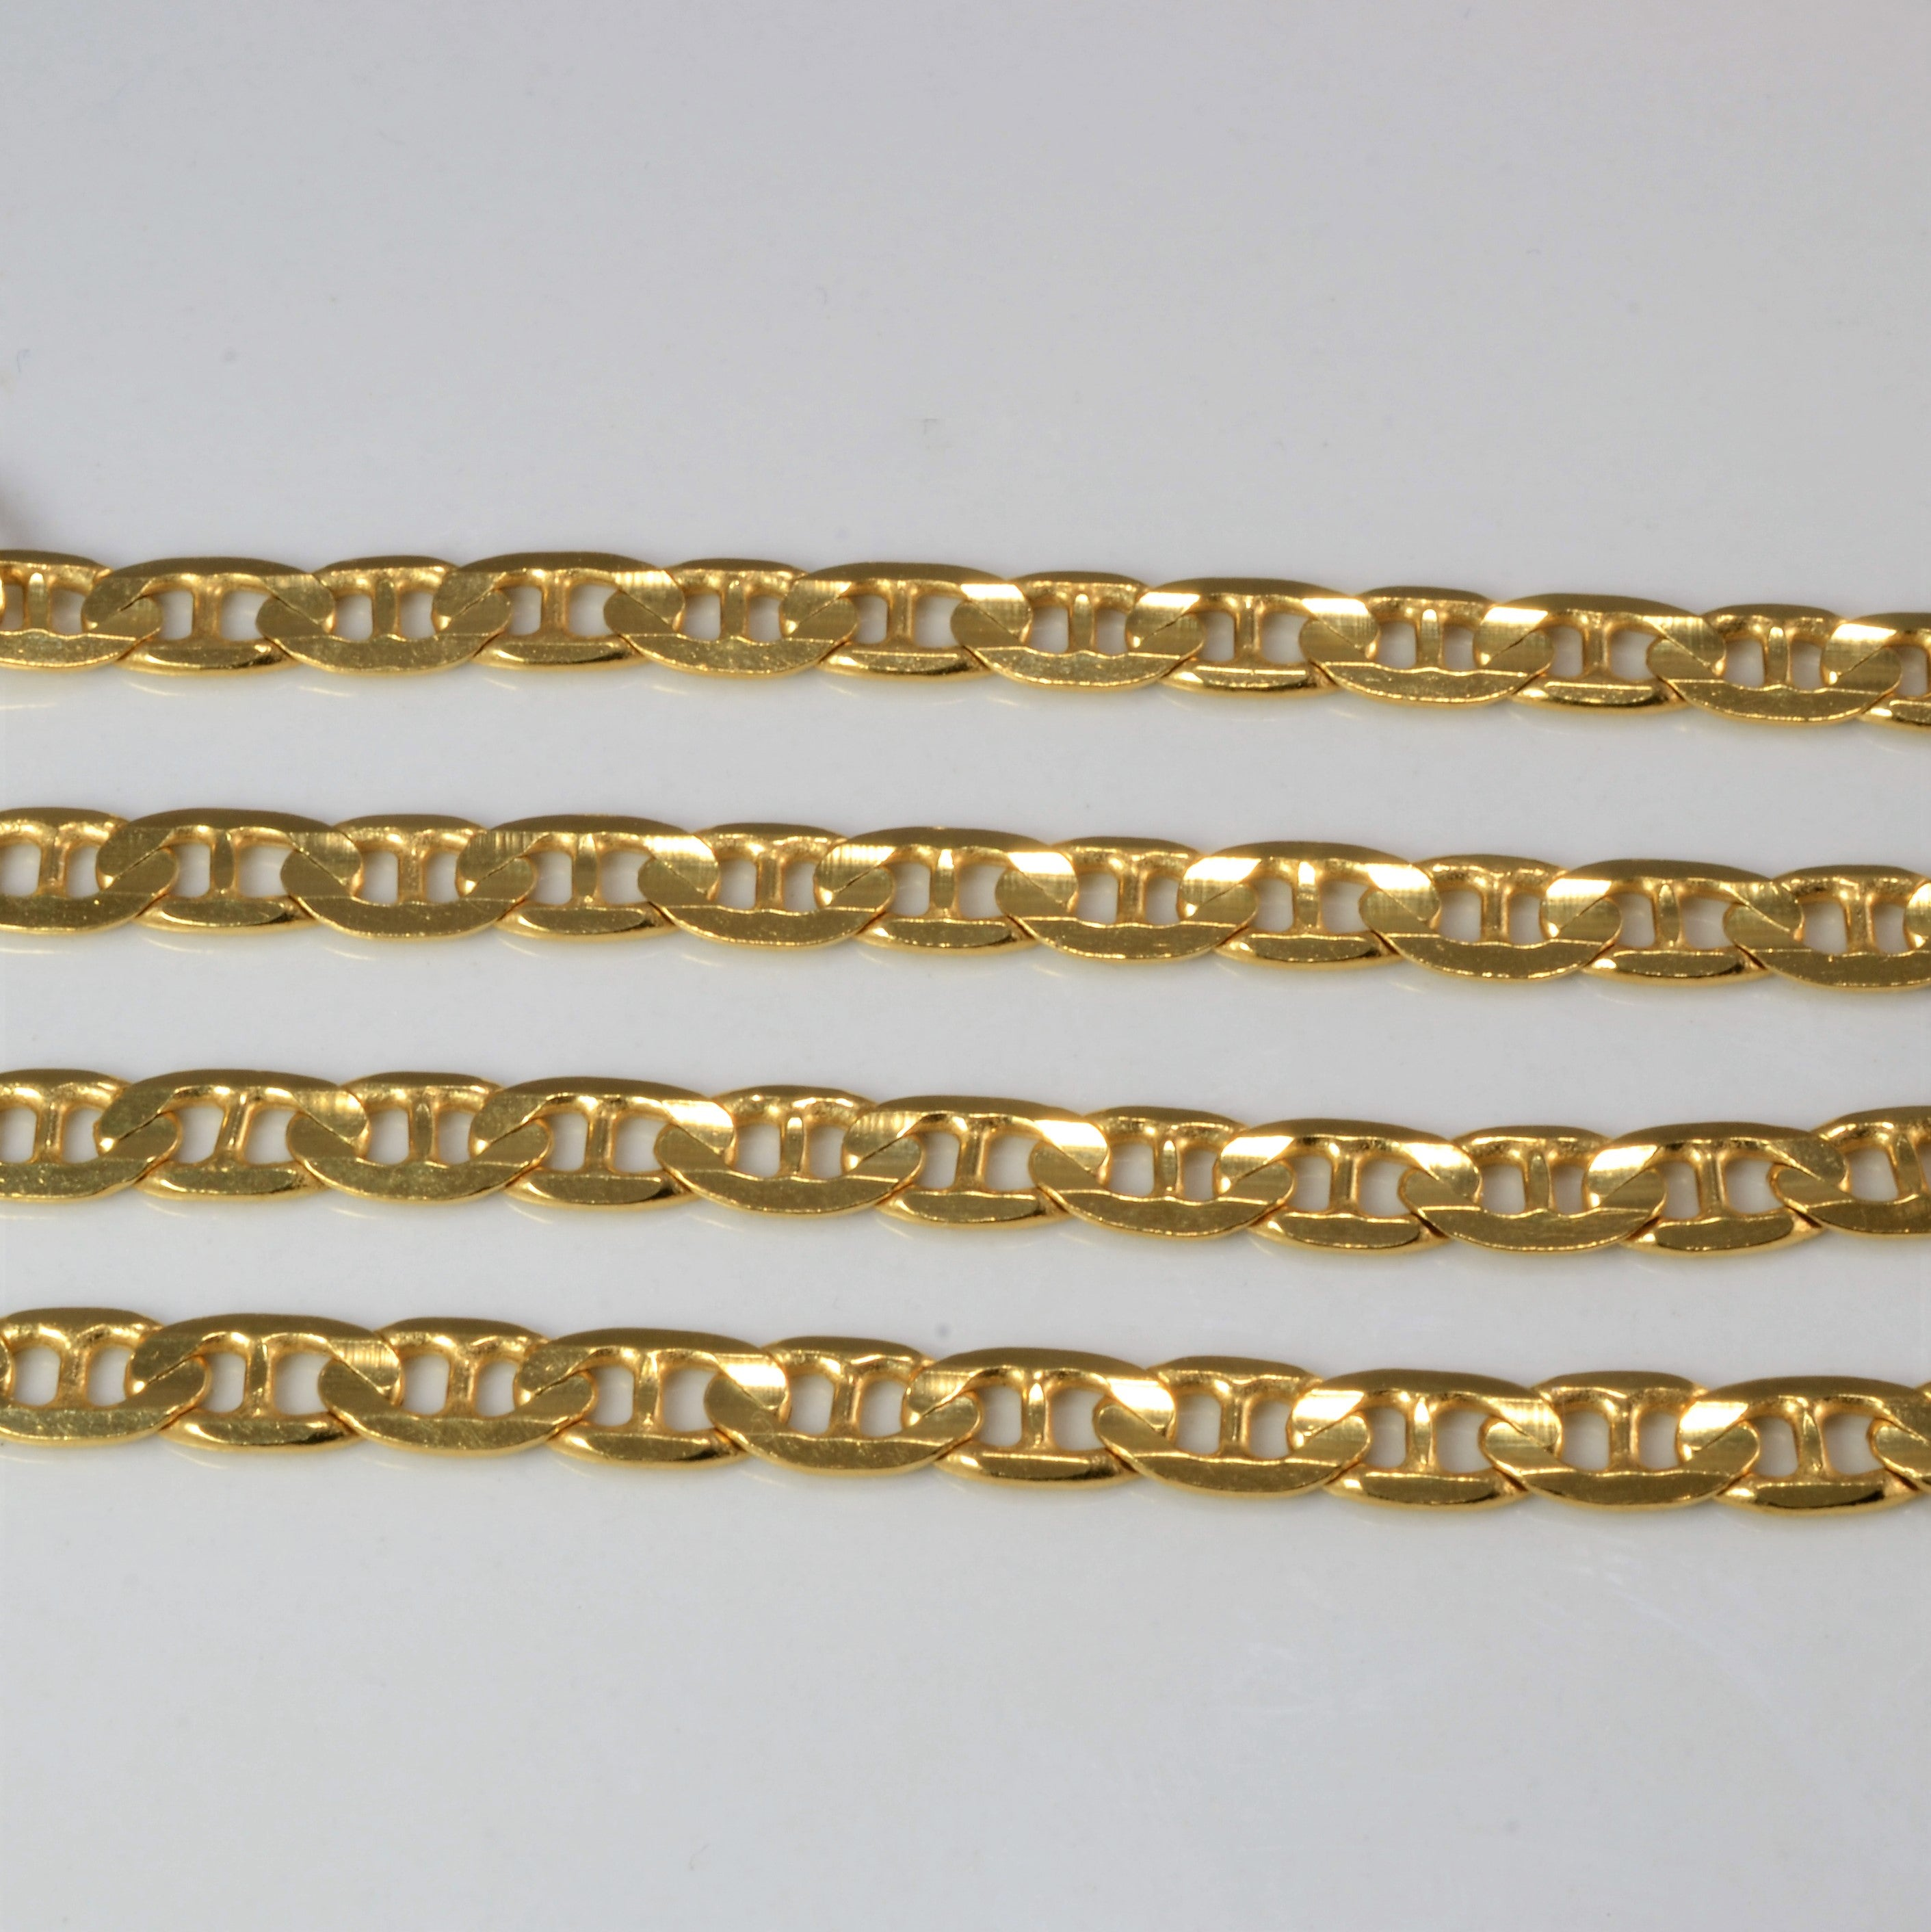 BIRKS 18K Gold Anchor Link Chain | 18''|